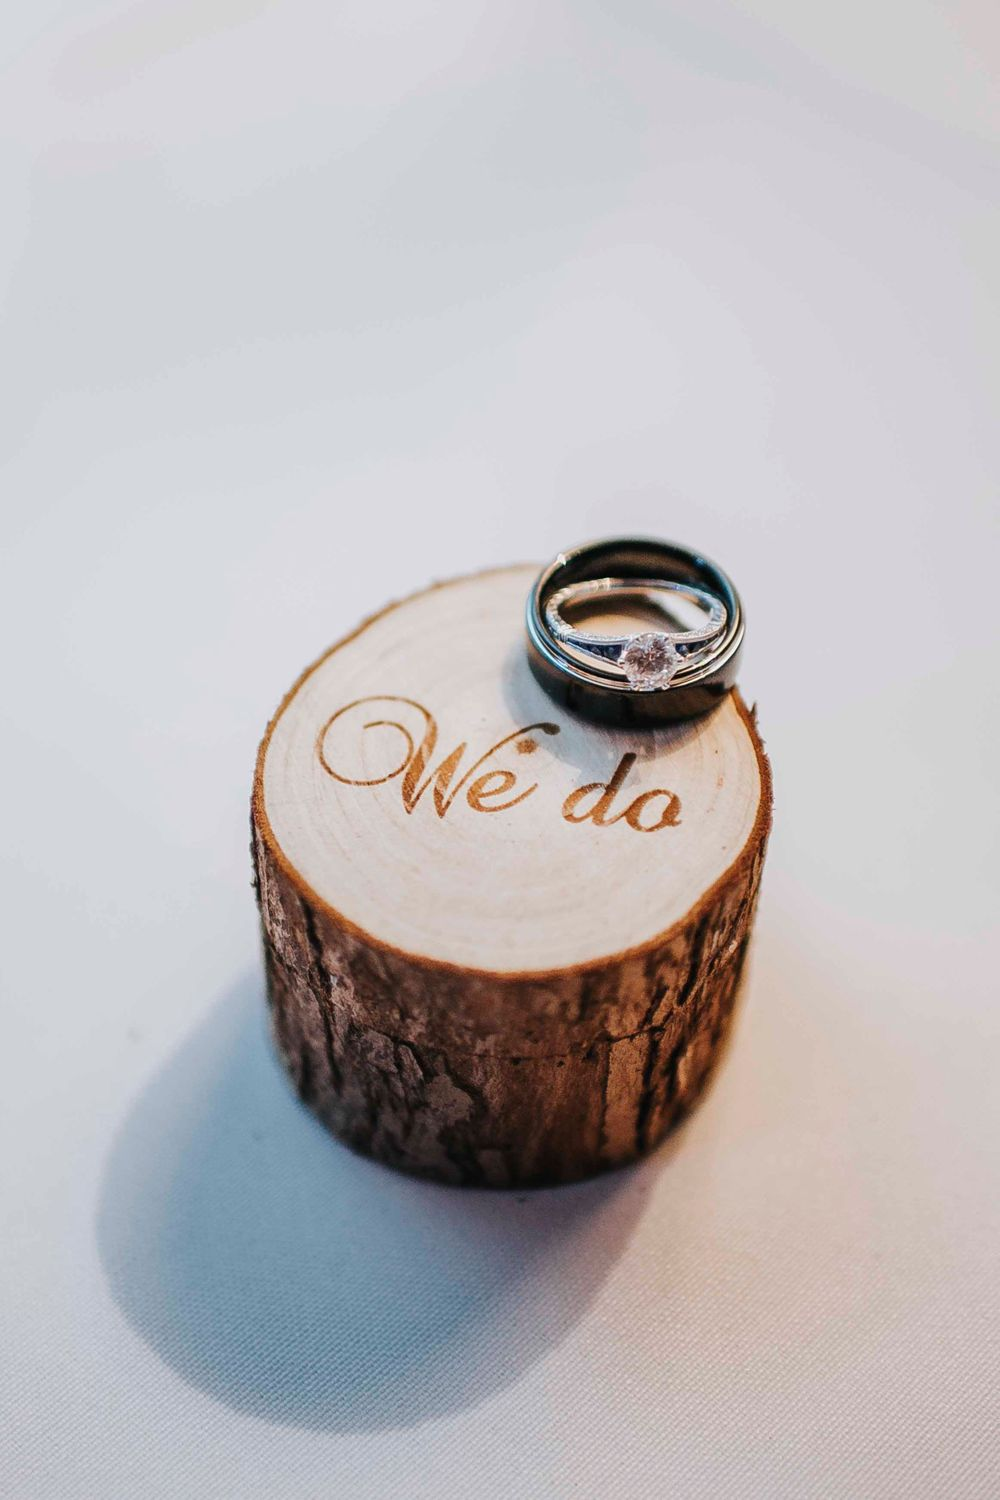 rebecca skidgel photography placerville winter wedding detail photos rings custom ring box